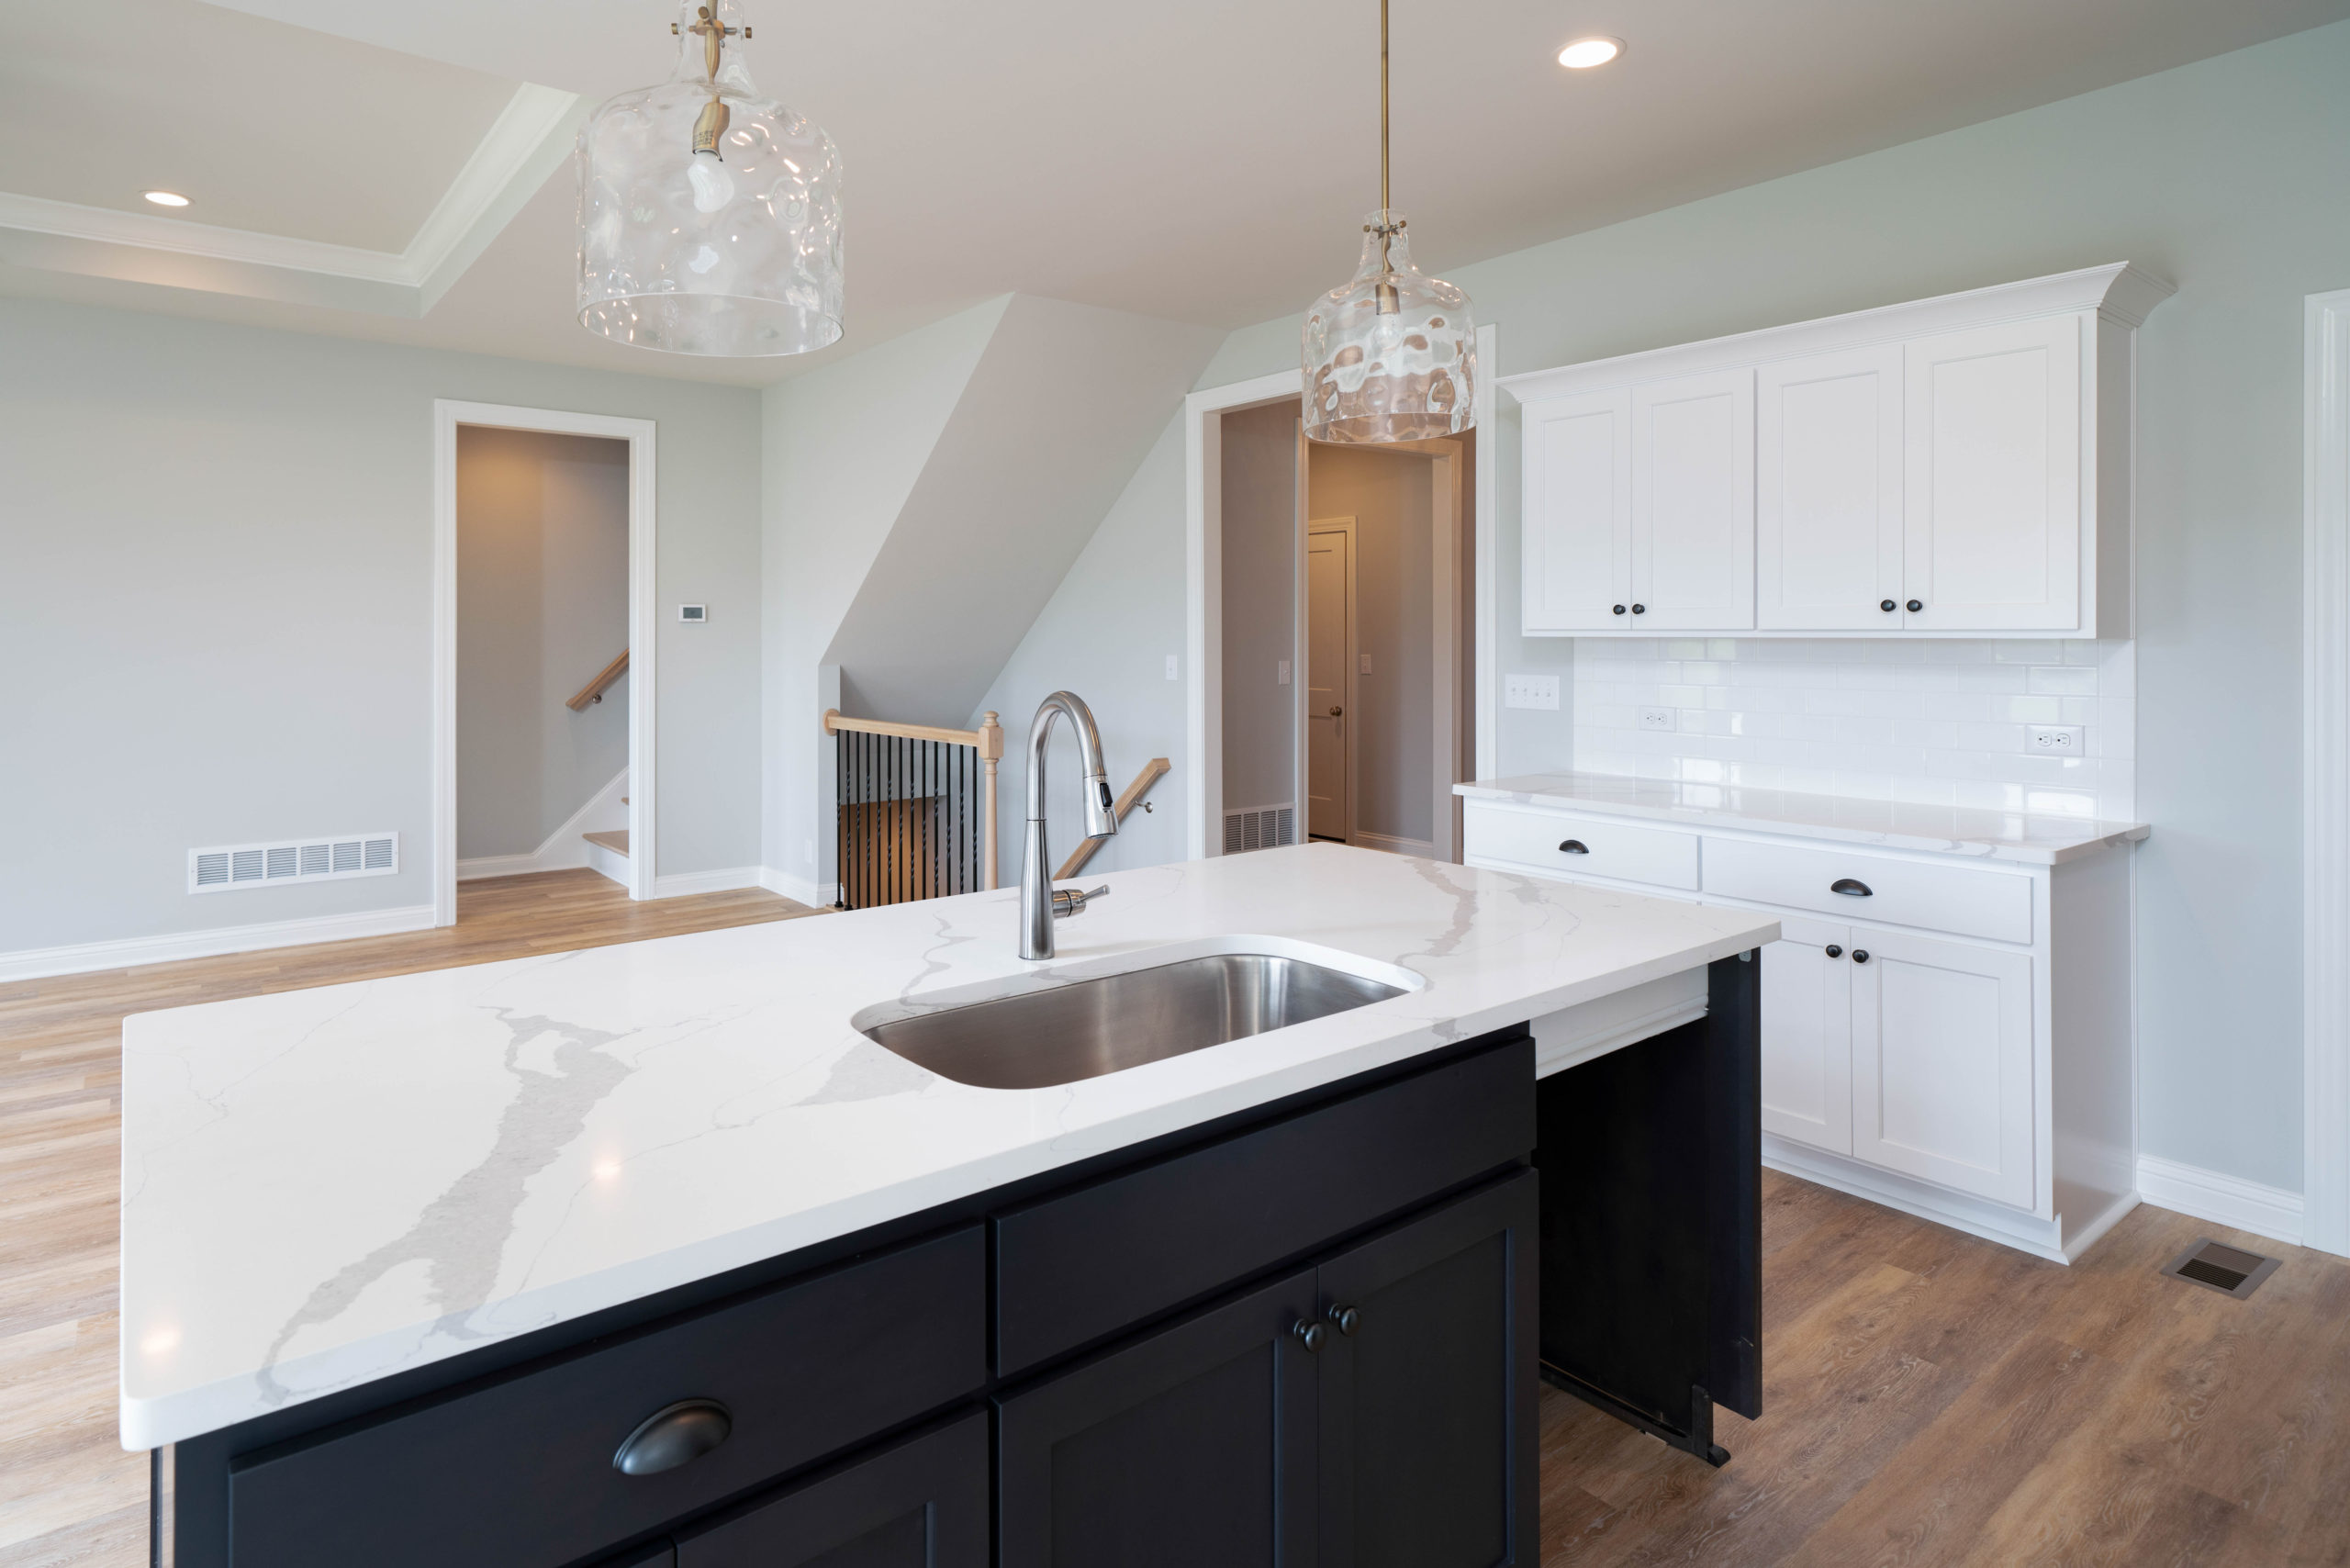 black kitchen island with white marble countertop